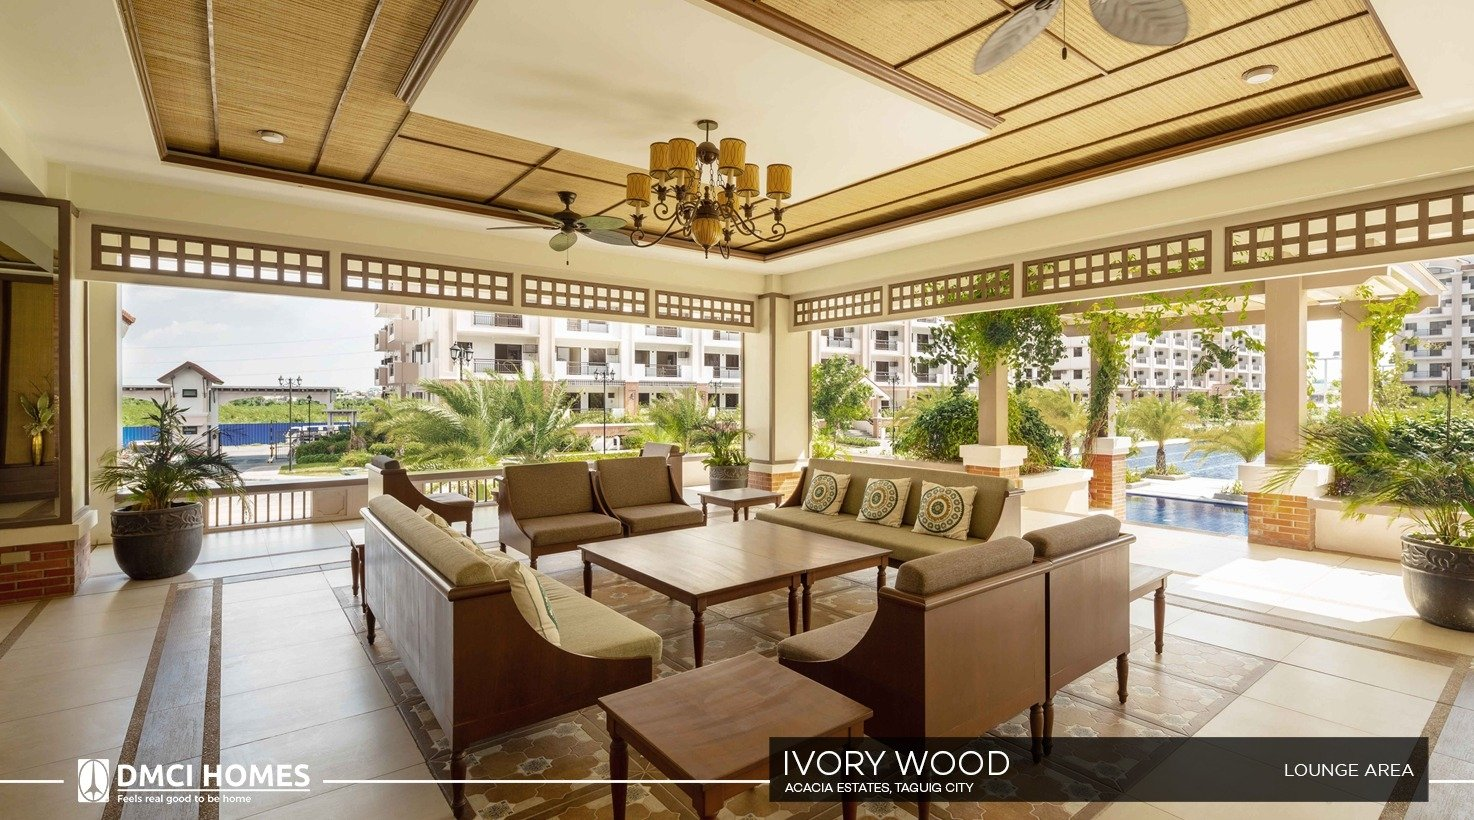 Ivory Wood-Lounge Area-large